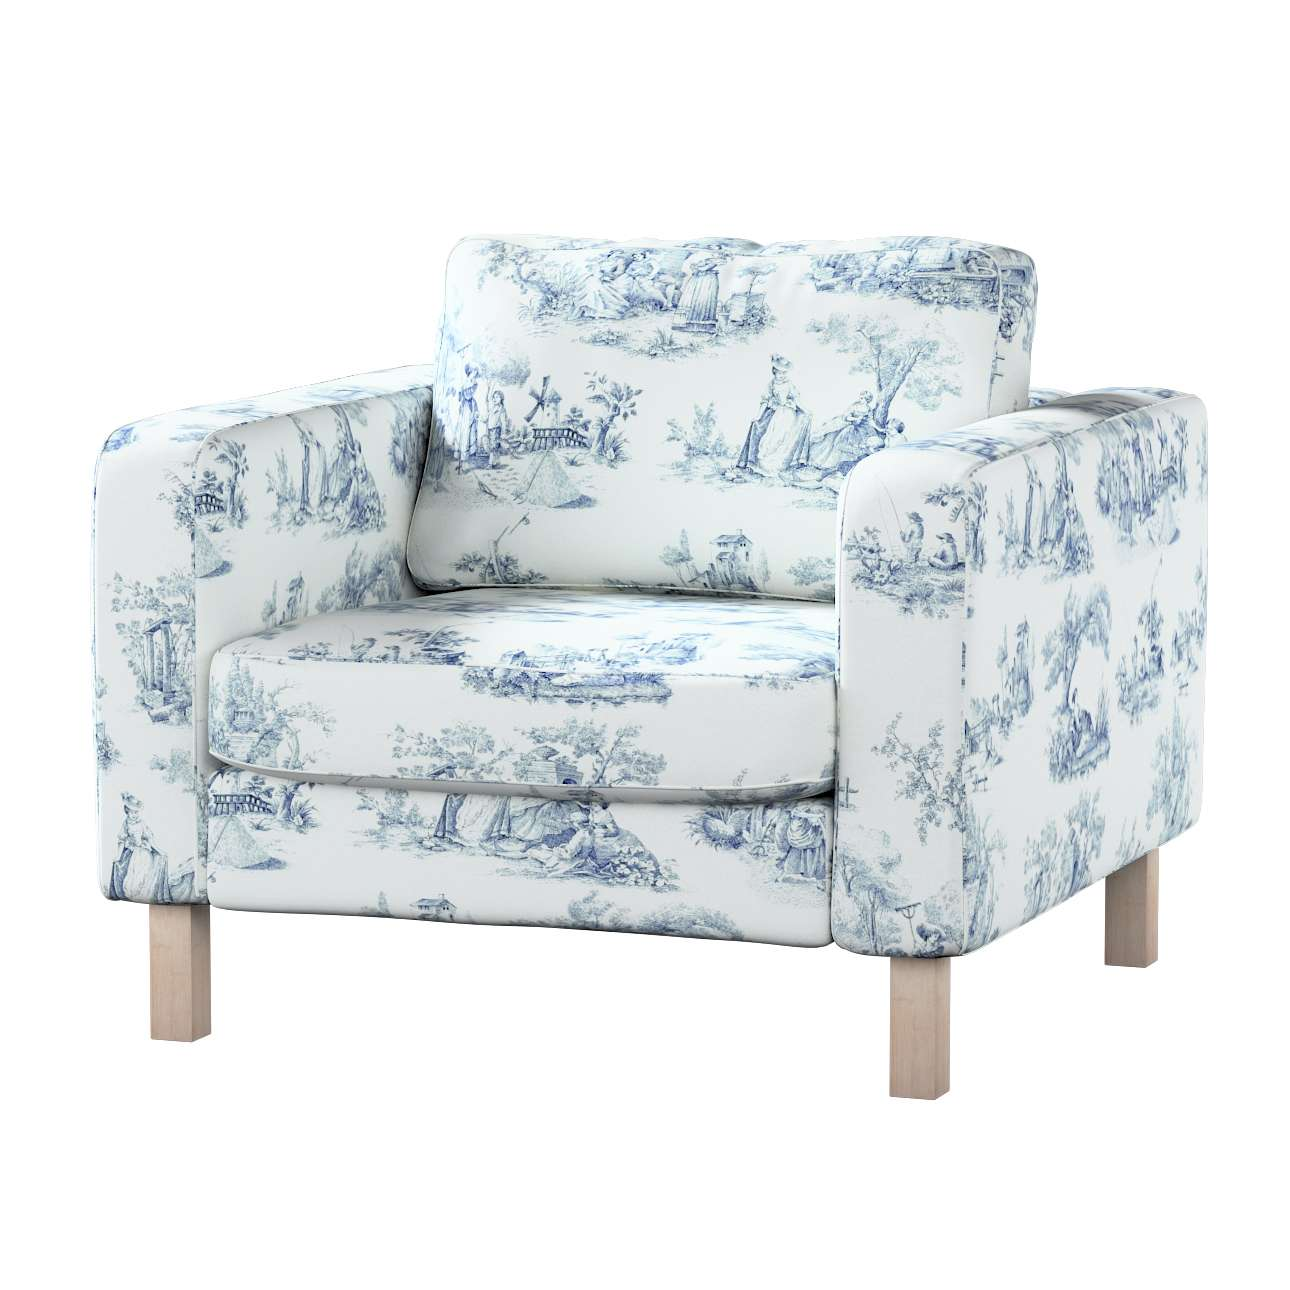 Karlstad armchair cover Karlstad armchair cover in collection Avinon, fabric: 132-66